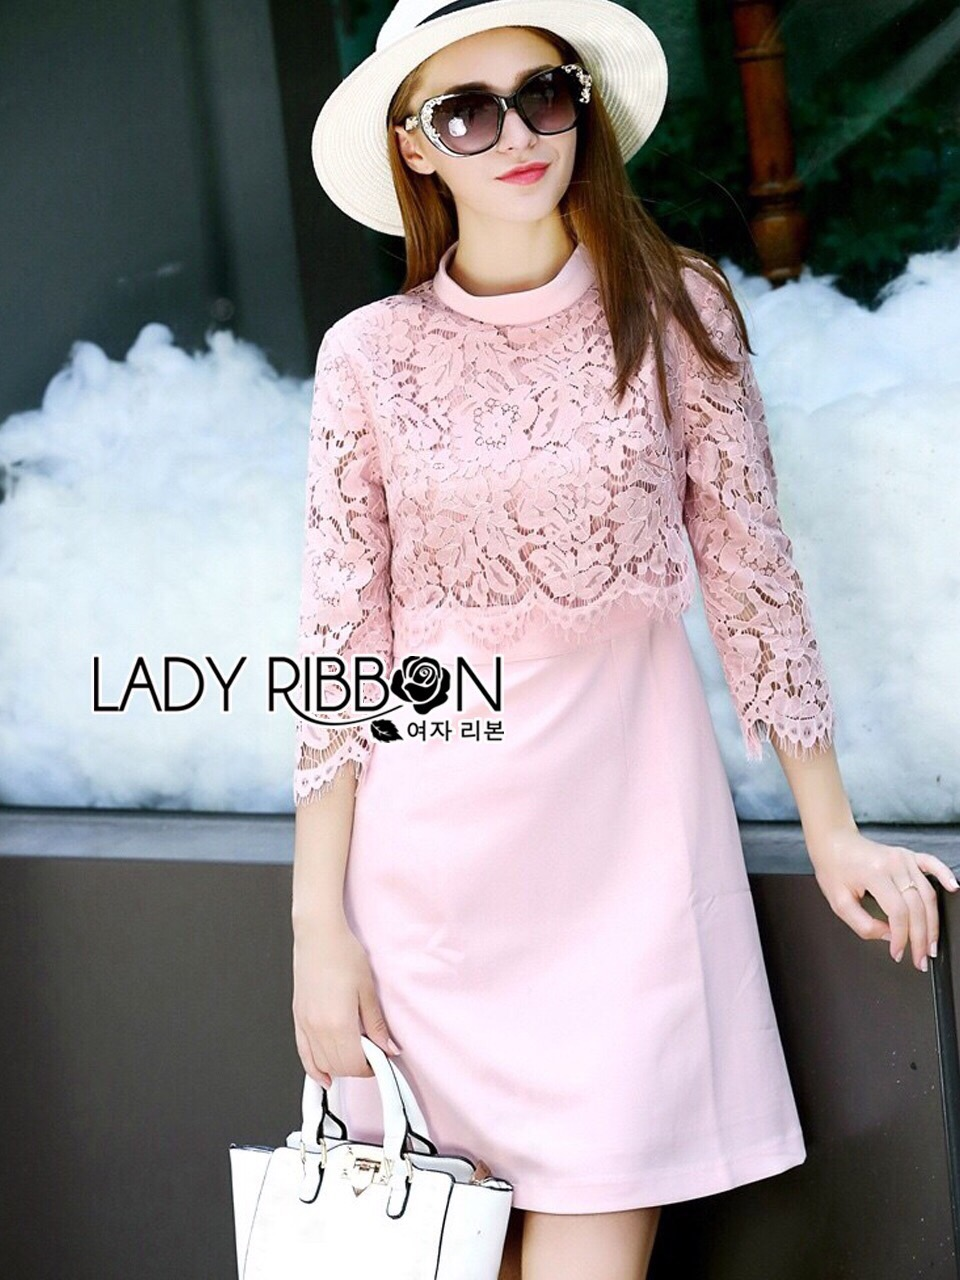 Lady Ribbon Korea LR08230516 &#x1F380 Lady Ribbon's Made &#x1F380 Lauren Holiday Look Guipure Lace Dress in Pin